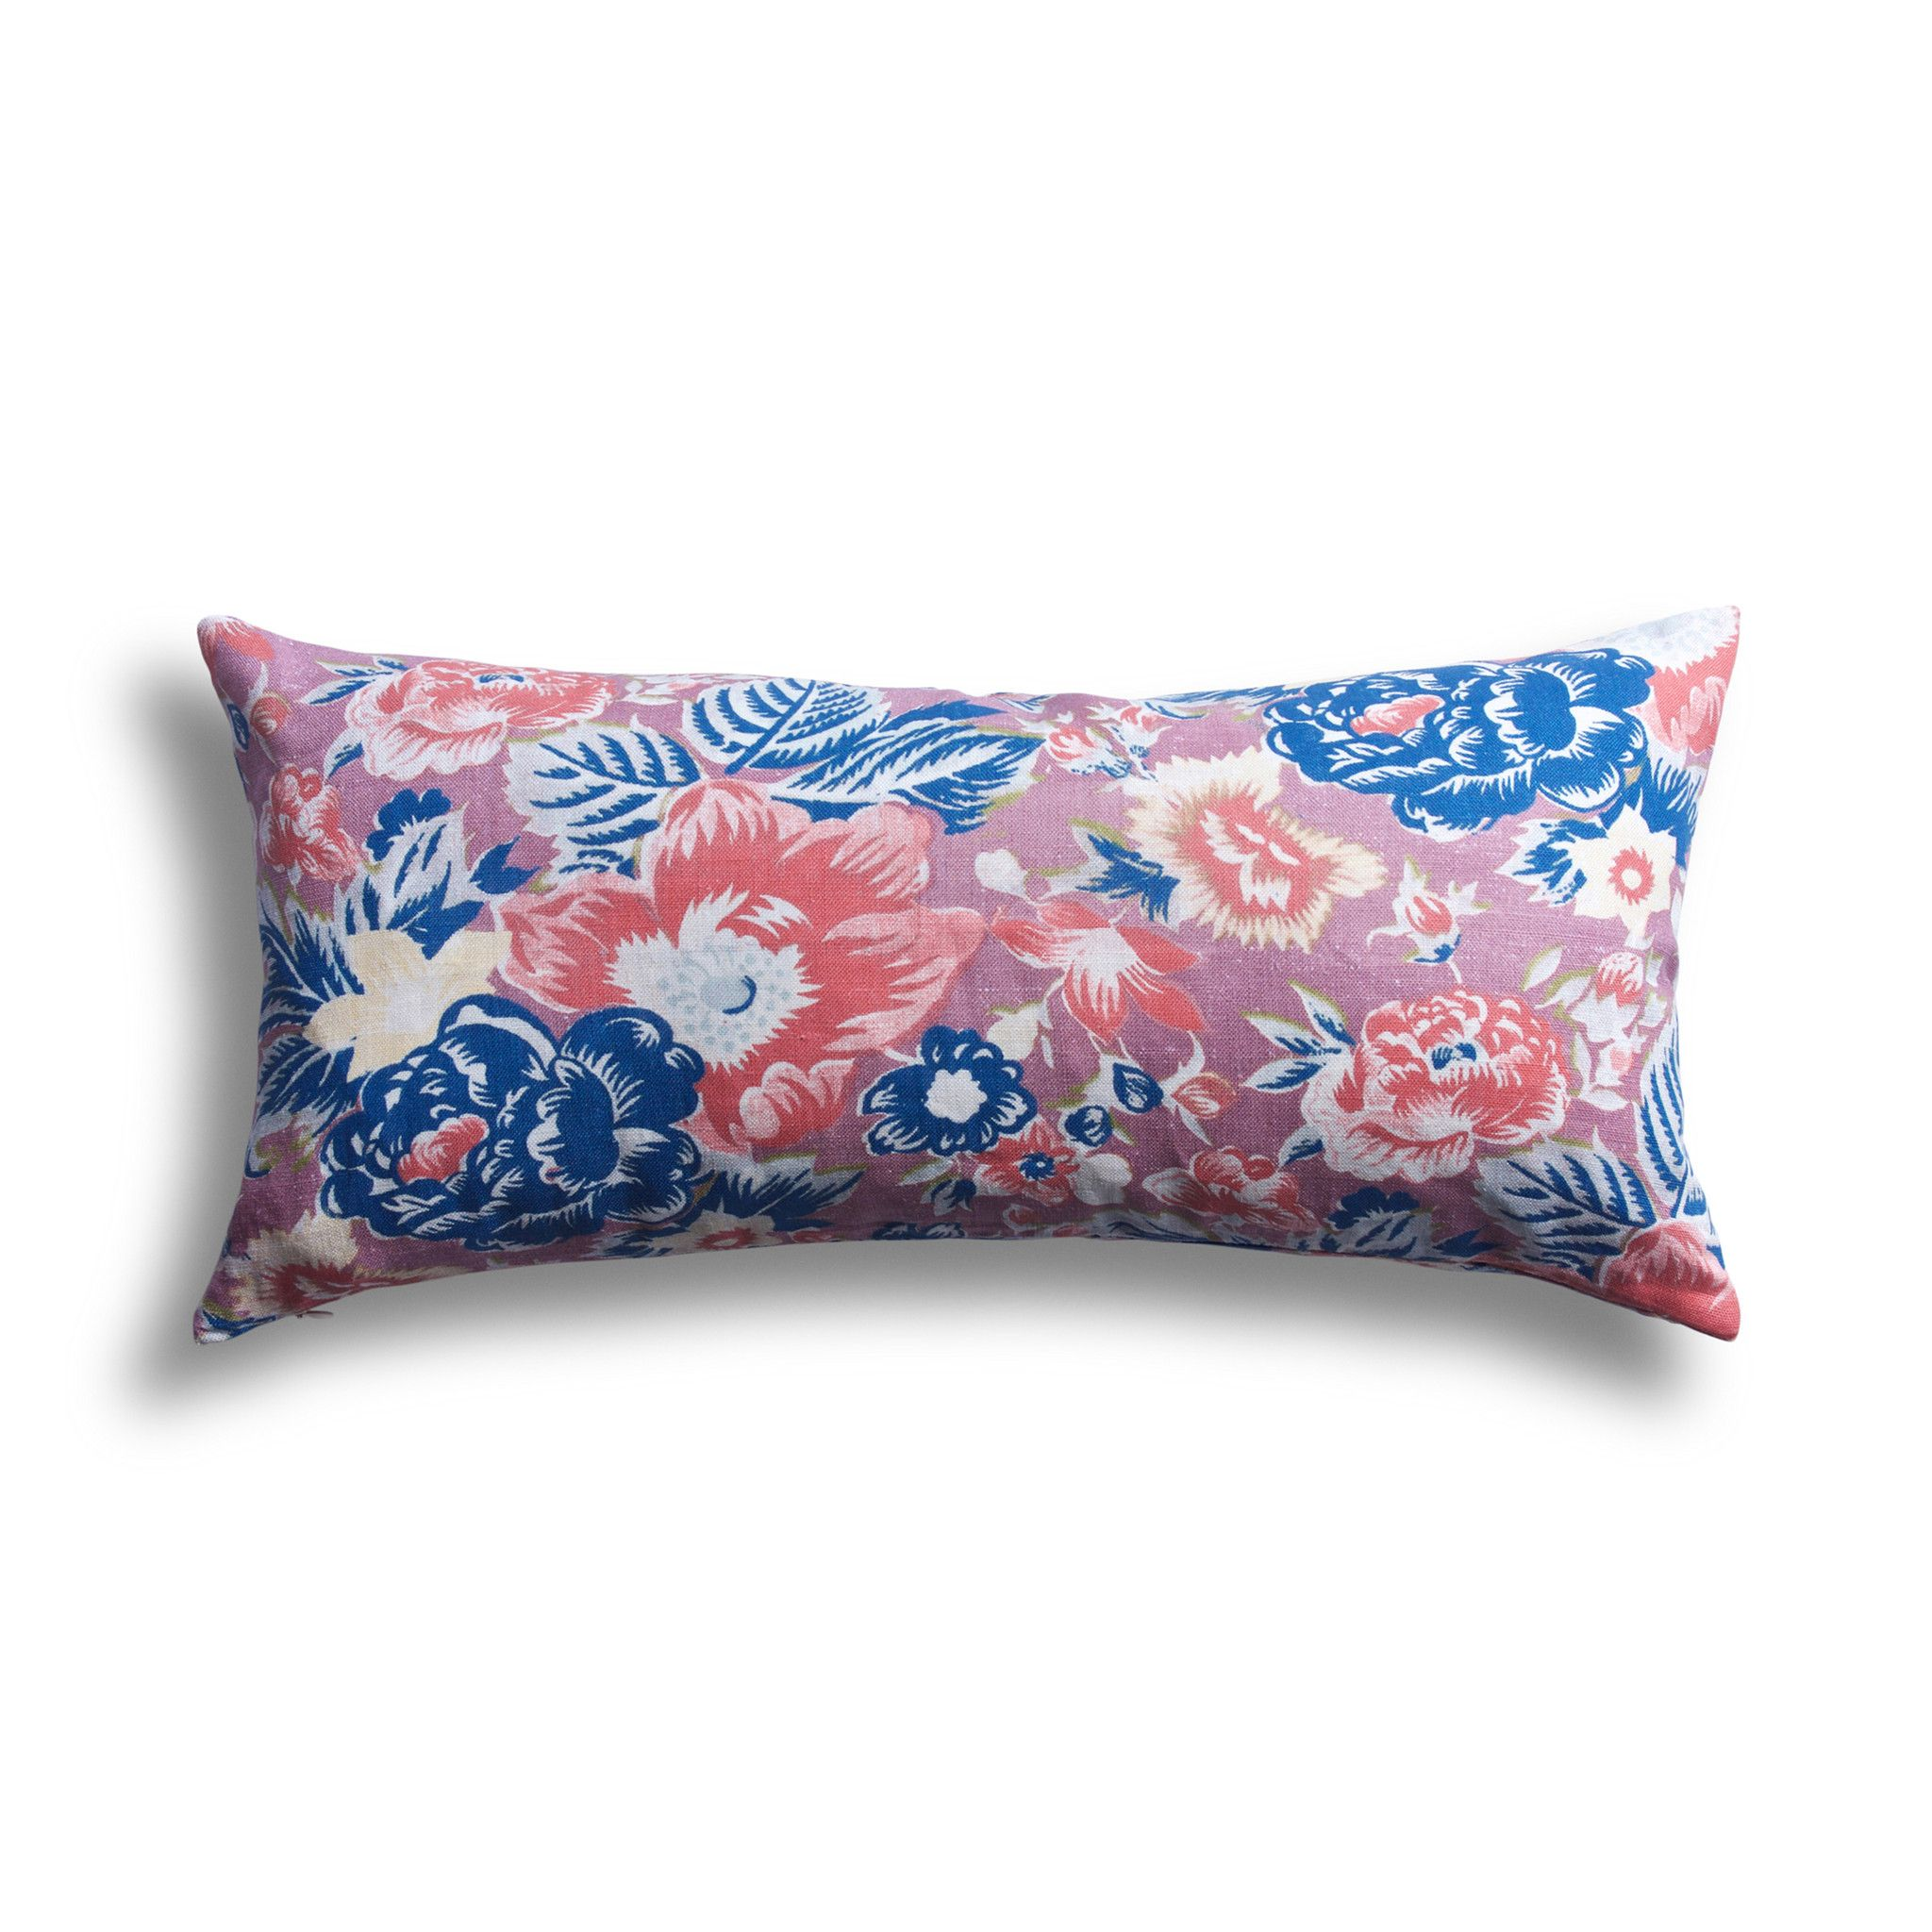 Coral Summar Palace Pillow 12 X 24 In Screen Printed Pillow Pillows Belgian Linen